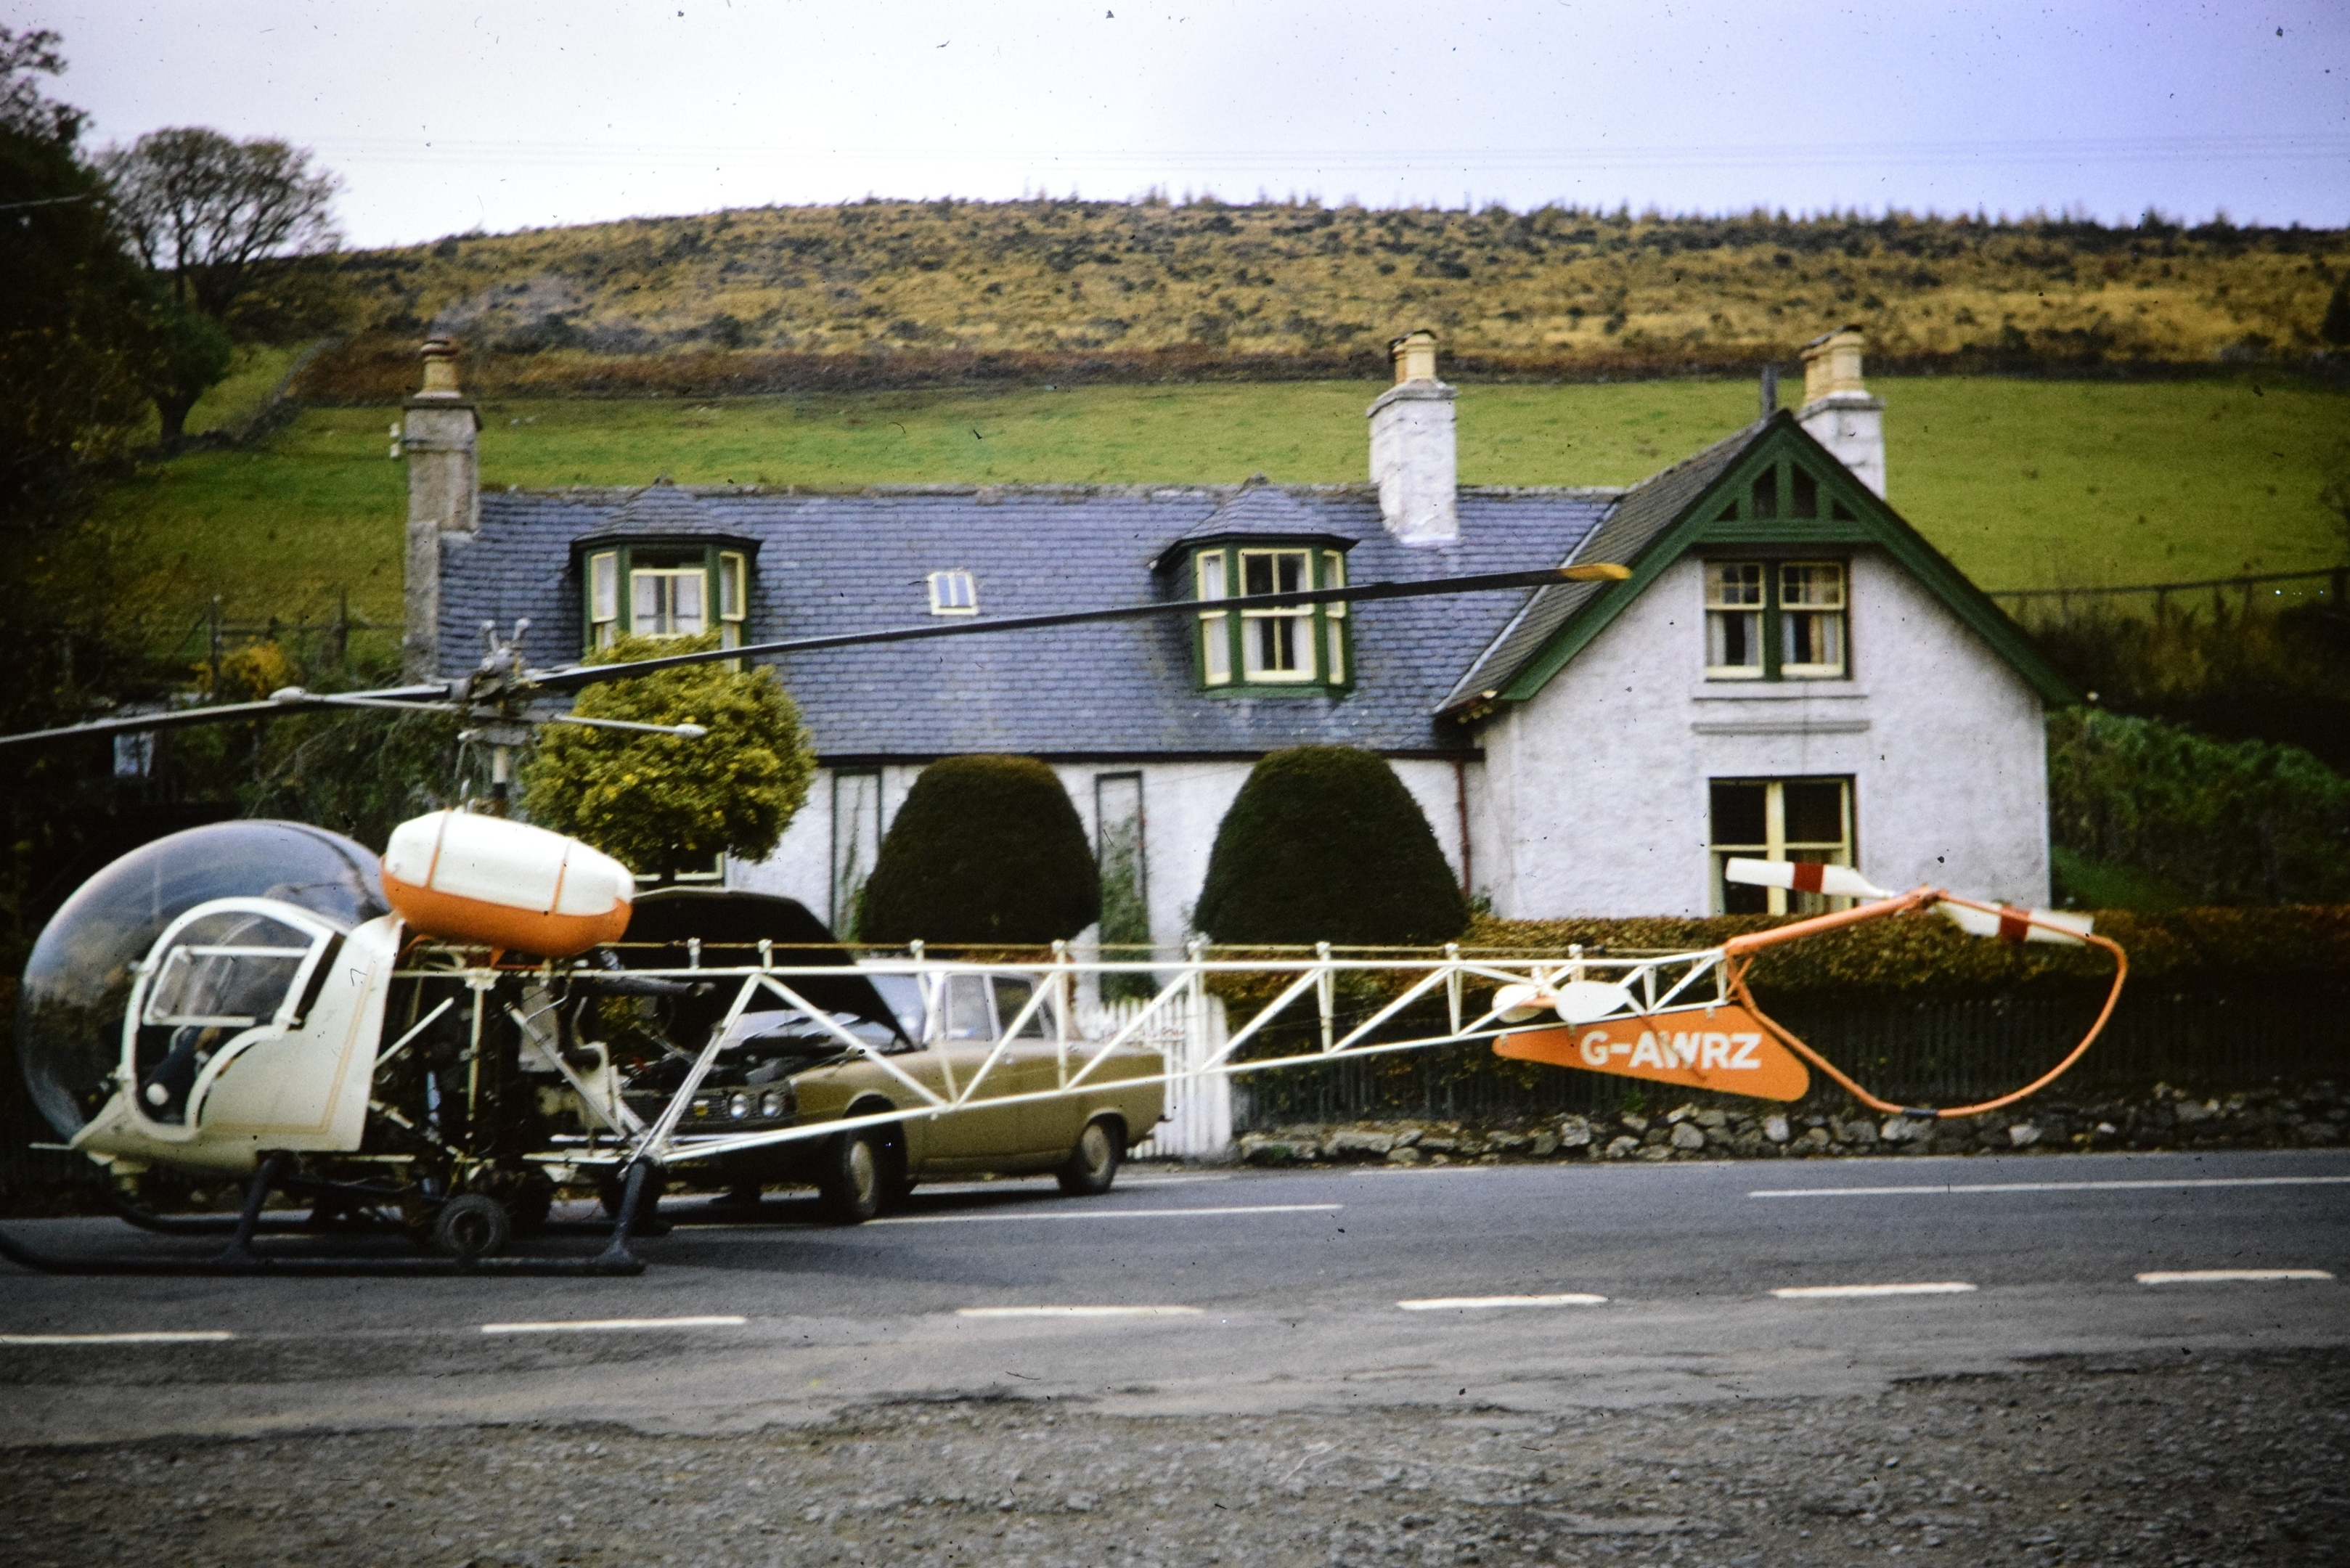 The Bell Type 47G helicopter  being jump started in Bellabeg, Strathdon, 1974.